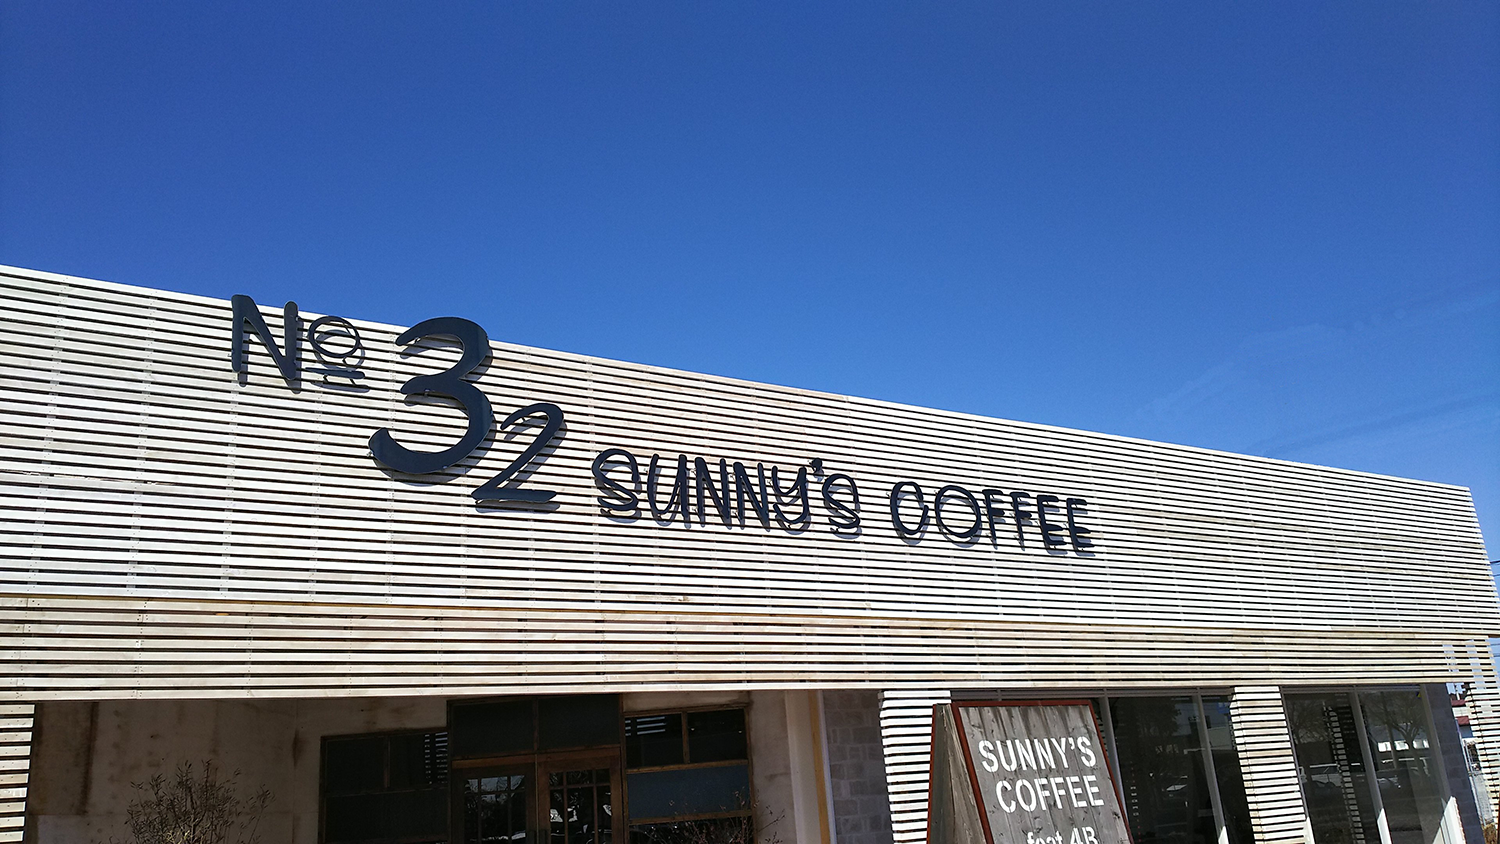 Sunny's Coffee feat. Four Barrel 公式ホームページ 栃木県 大田原店